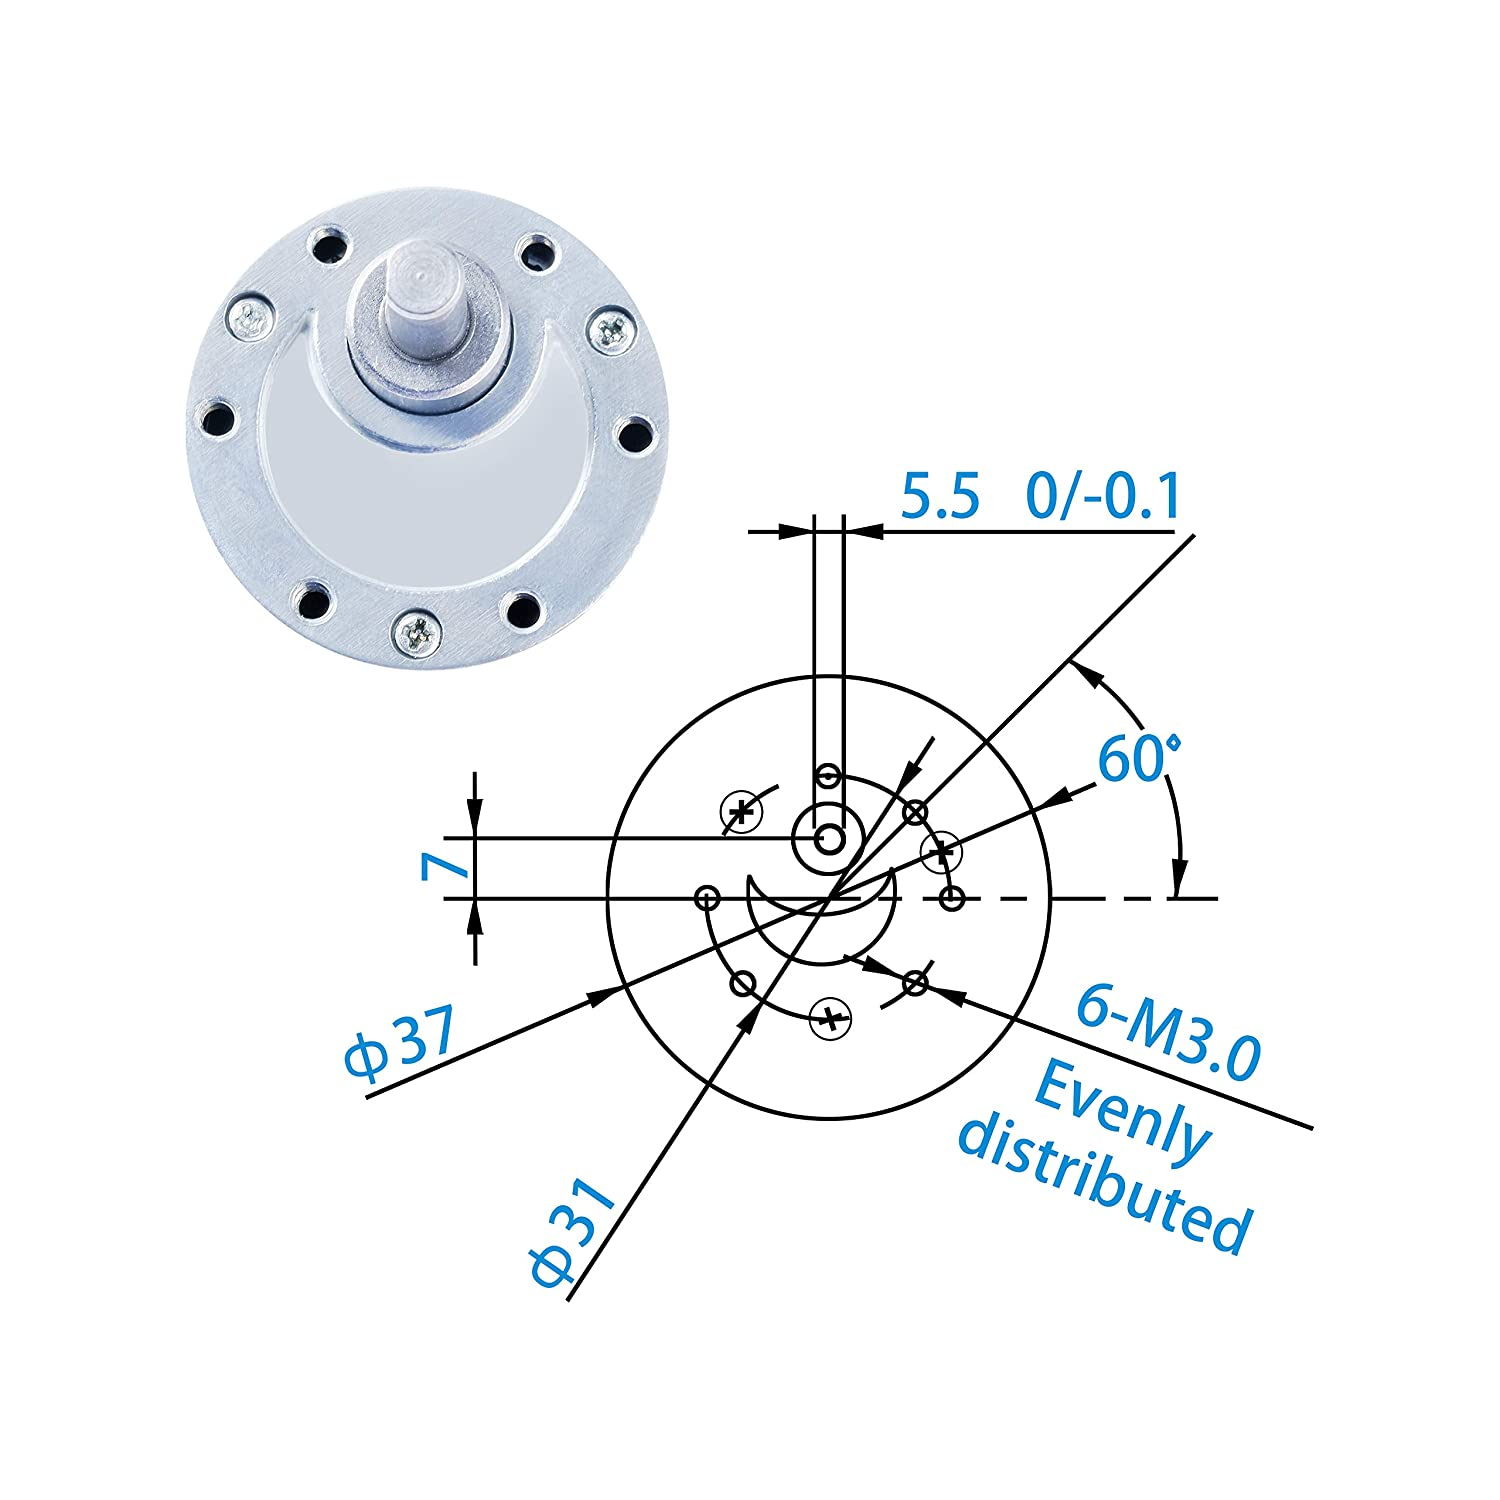 157 RPM//28 kg.cm with Mounting Bracket 389 oz.in D-Shaped Gearbox Output Shaft is 16 mm Long and 6 mm in Diameter. CQRobot 70:1 Metal Gearmotor 37Dx70L mm 12V with 64 CPR Encoder